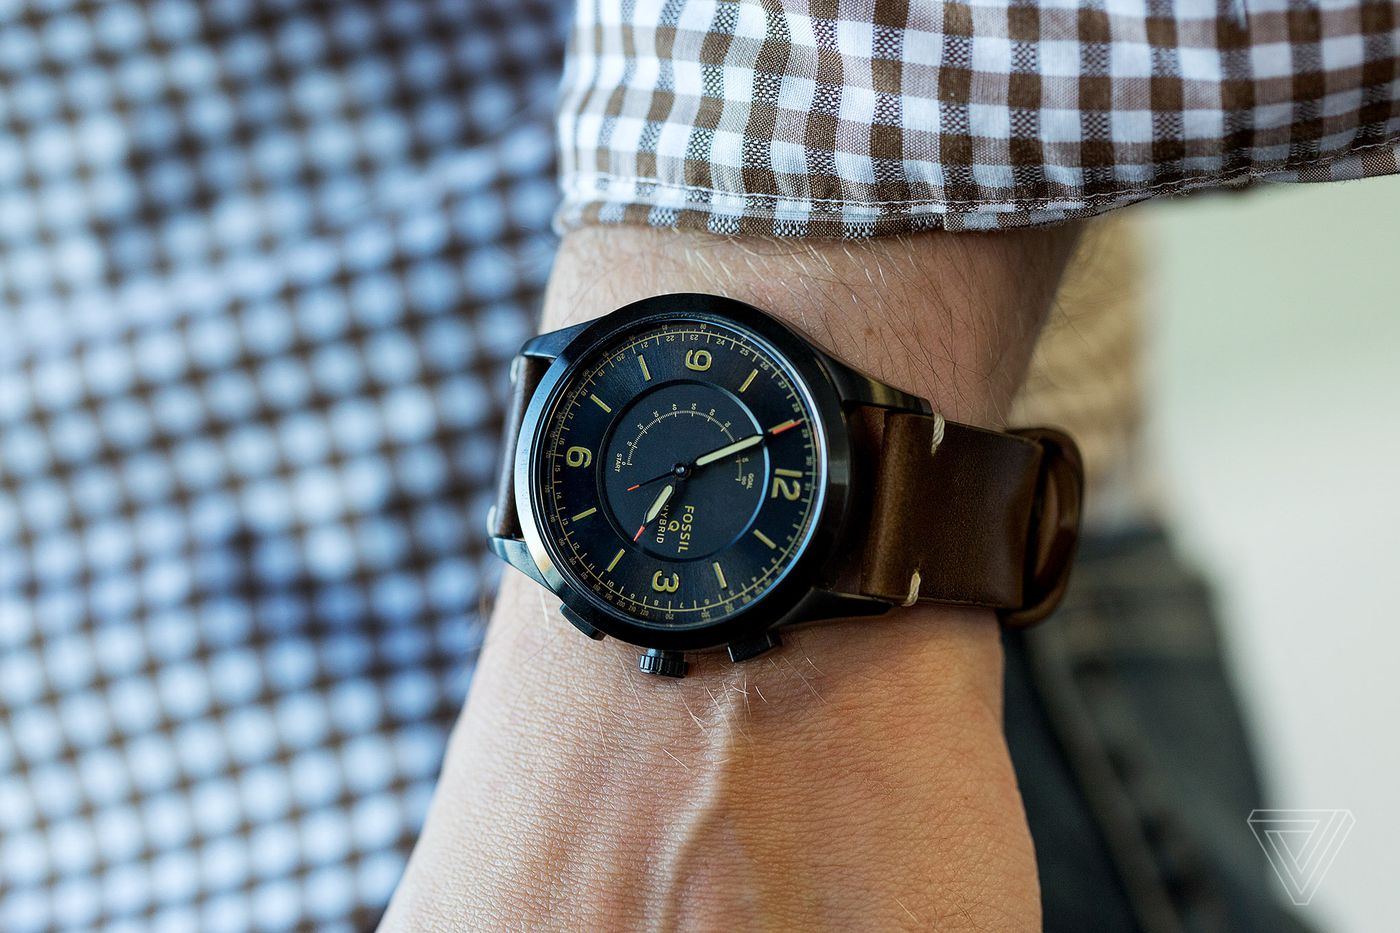 Fossil Q Activist review: watch first, smart second - The Verge